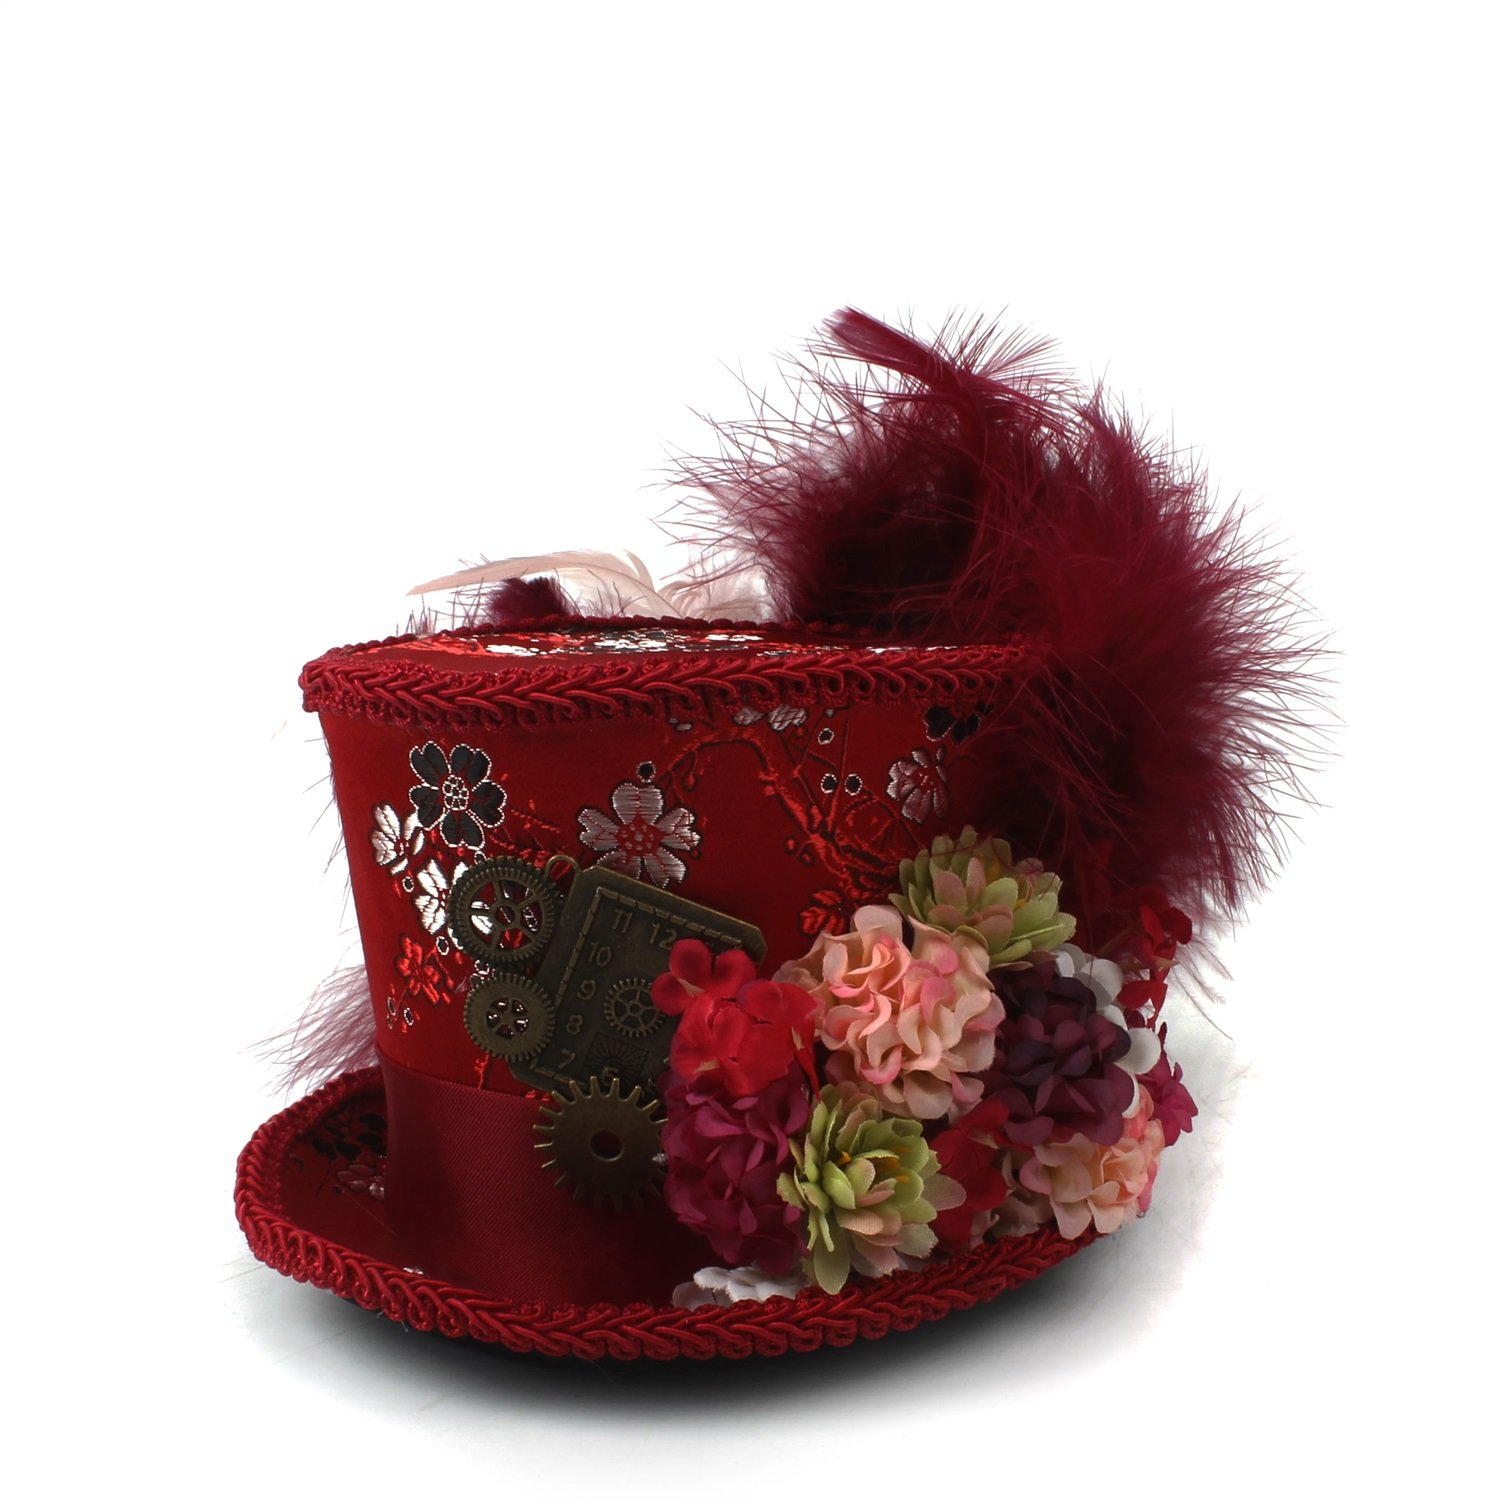 LL Women;s Red Mini Top Hat, Antique Red and Ivory Tea Cup Hat Mad Hatter Hat, Tea Hat,Mad Hatter Tea Party (Color : Red, Size : 25-30cm) by LL (Image #1)